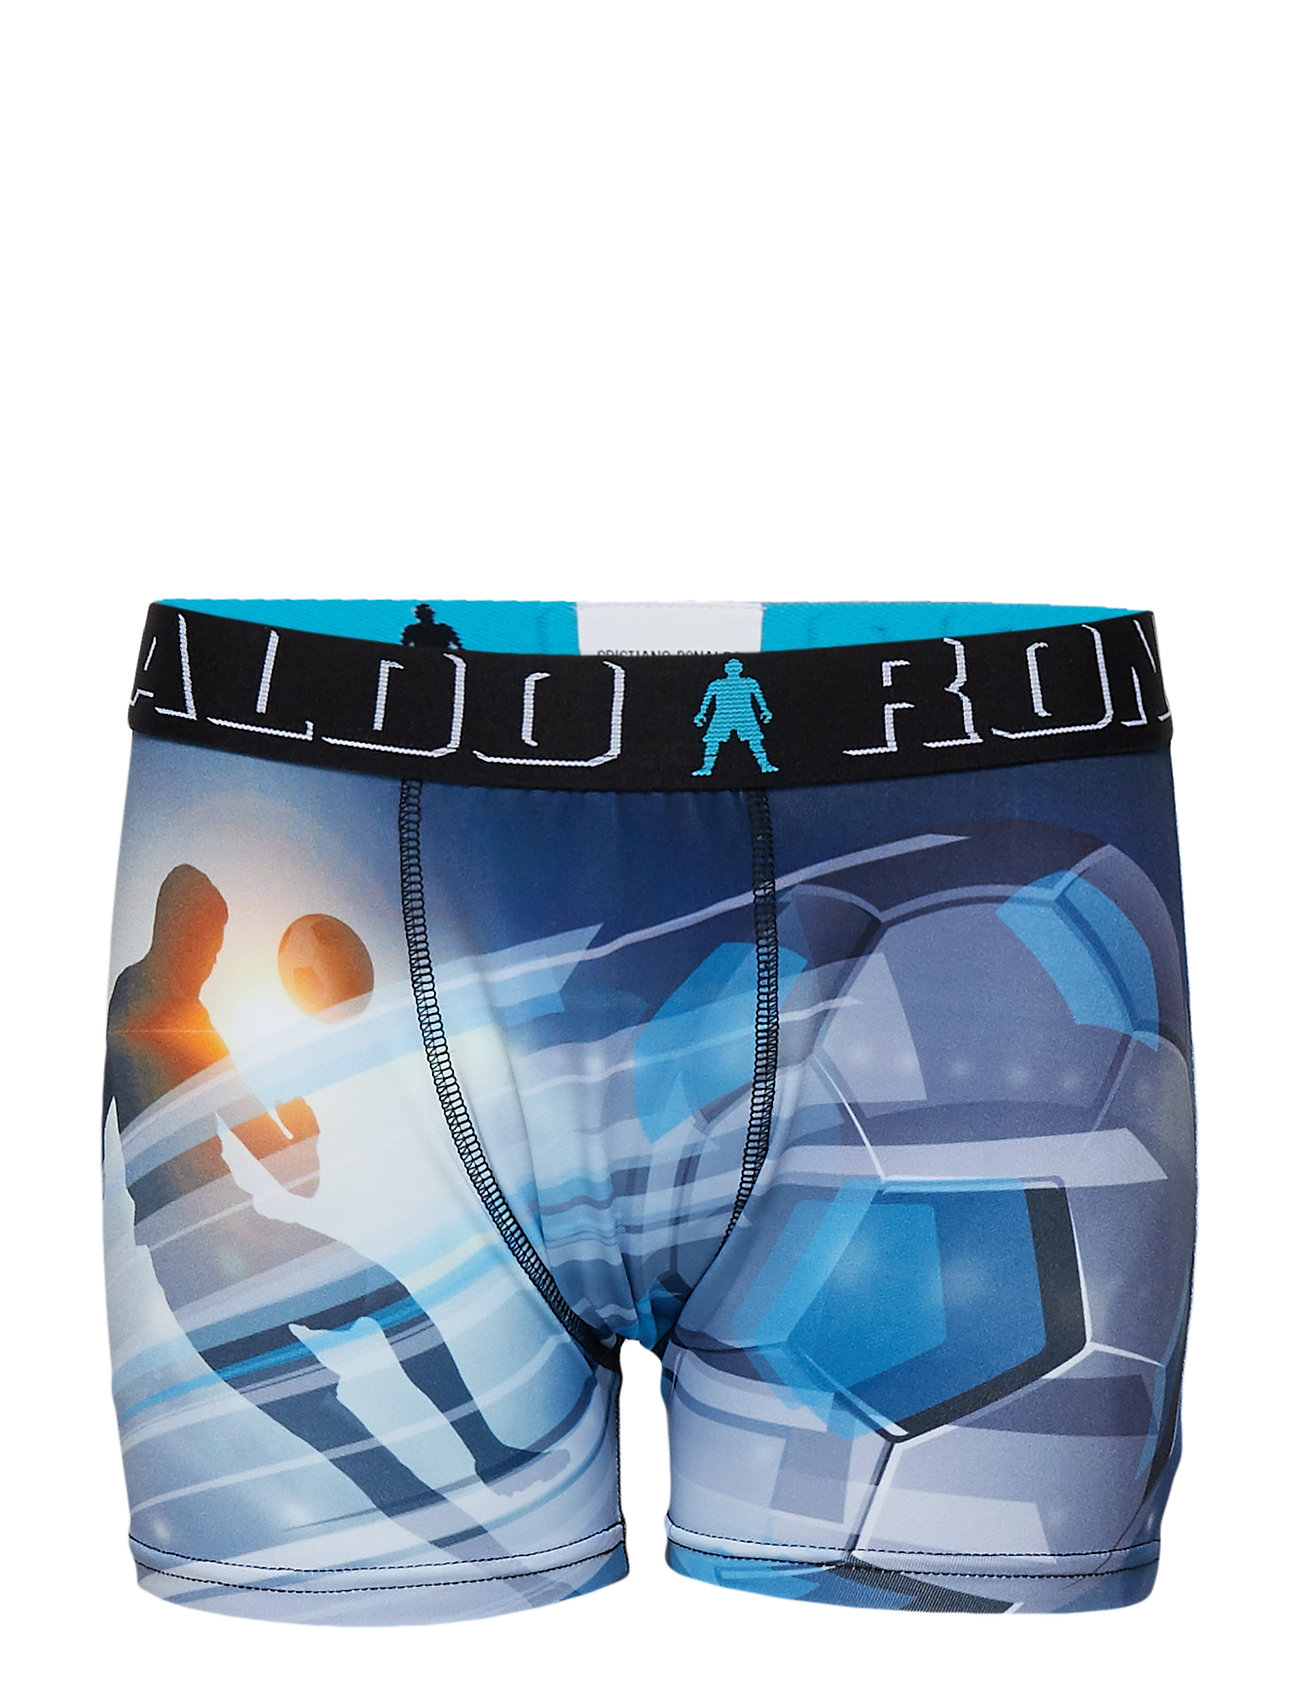 CR7 CR7Boy trunk photoprint 2-pack